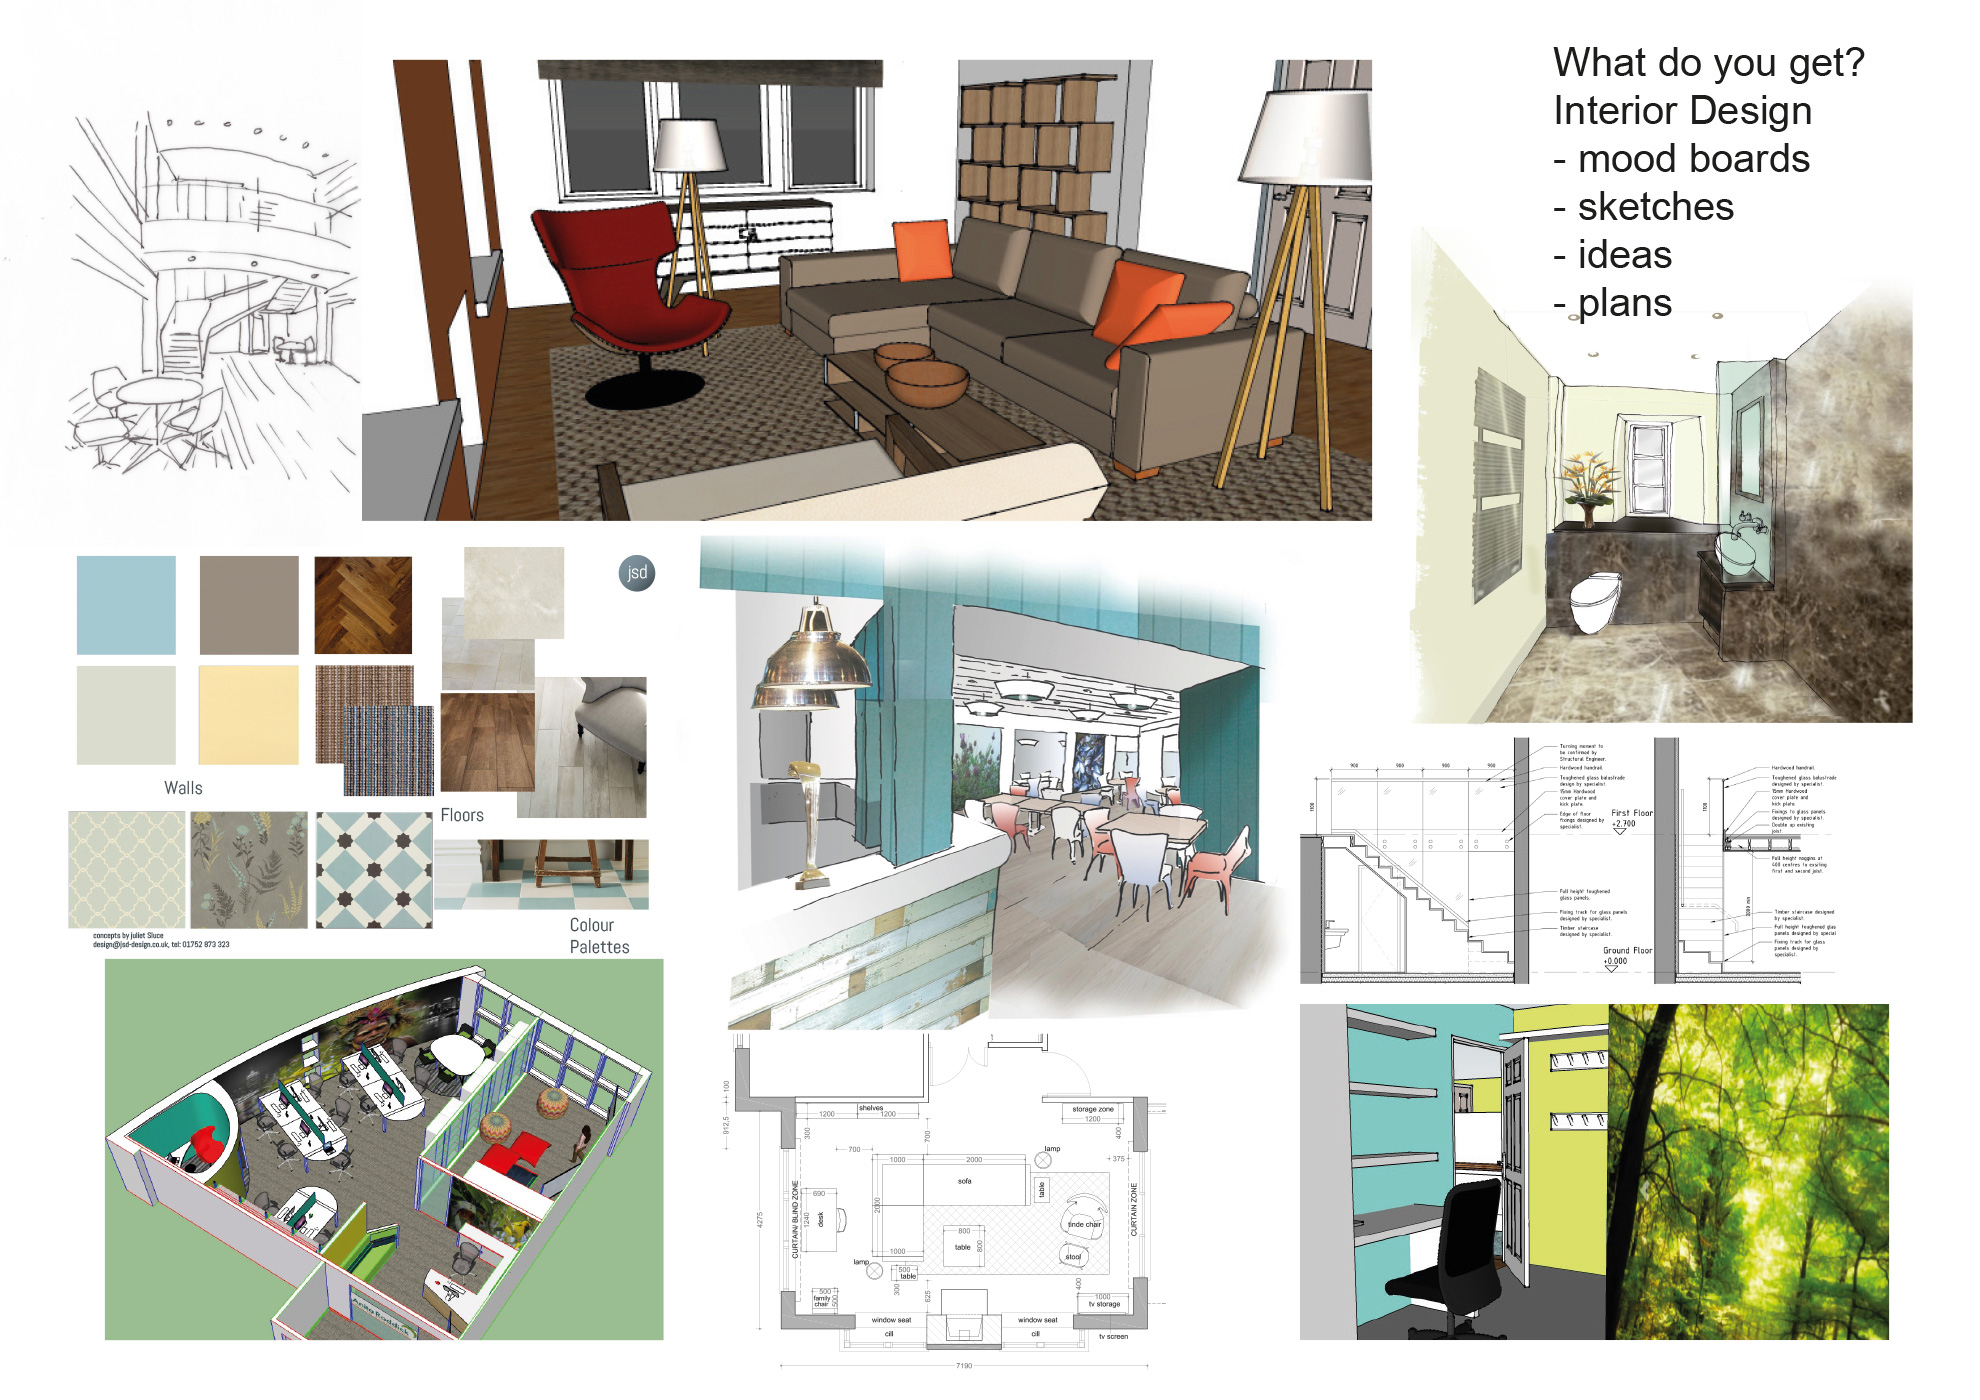 Jsd design architectural interior design solutions for Interior design process